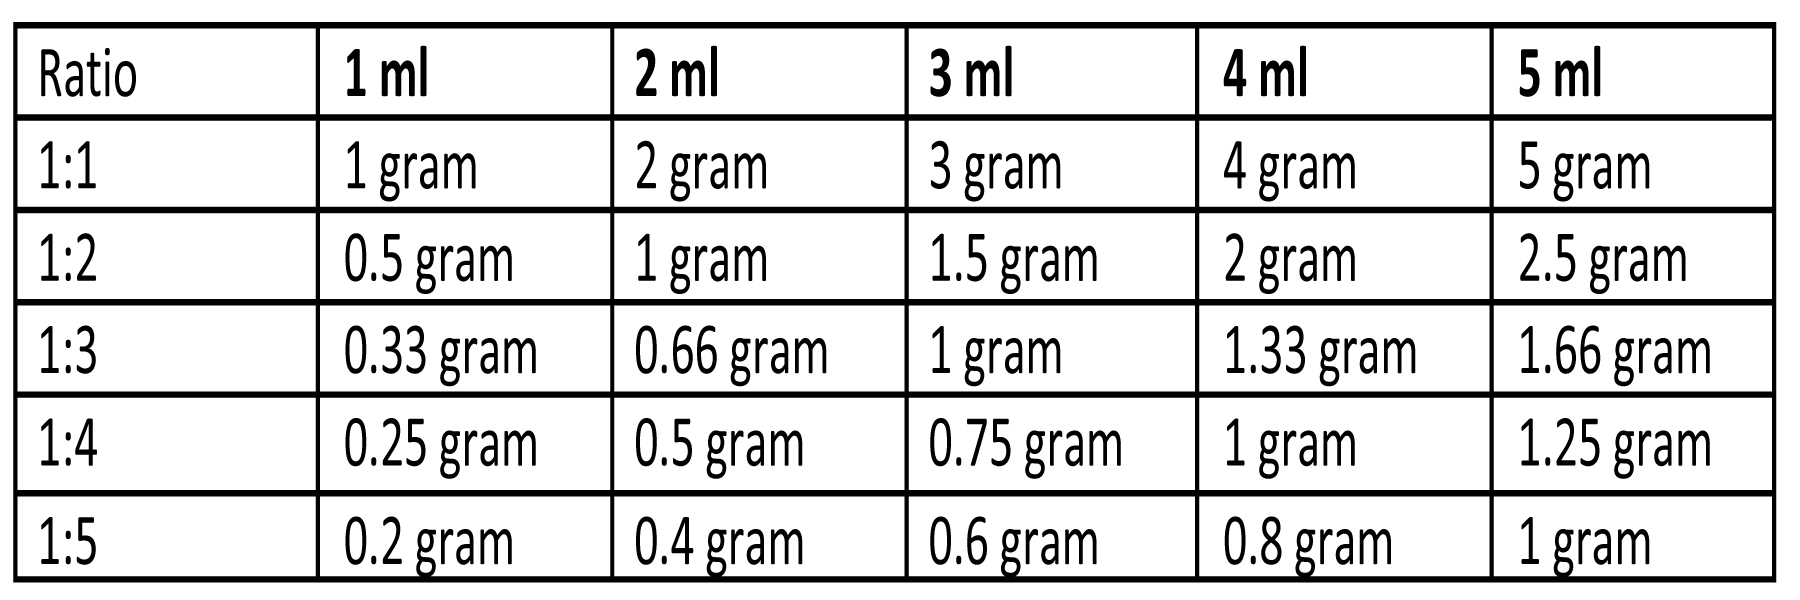 How many milligrams per gram